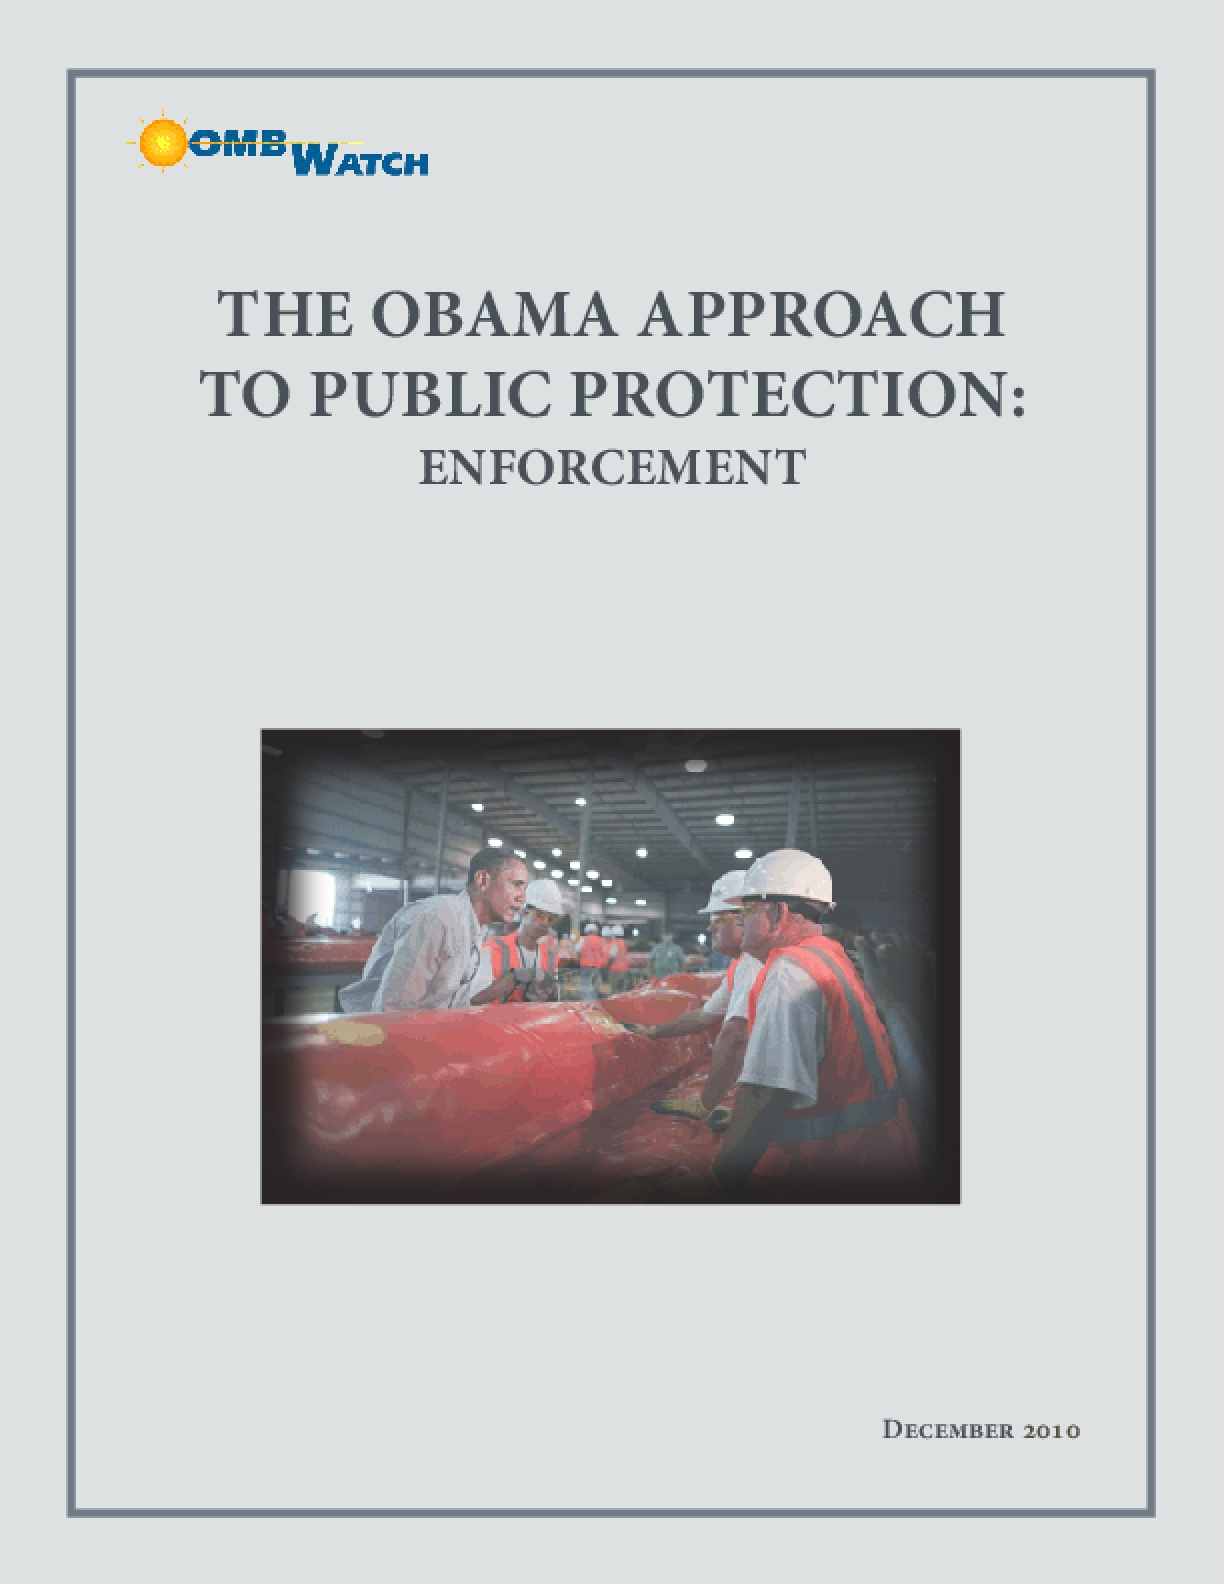 The Obama Approach to Public Protection: Enforcement